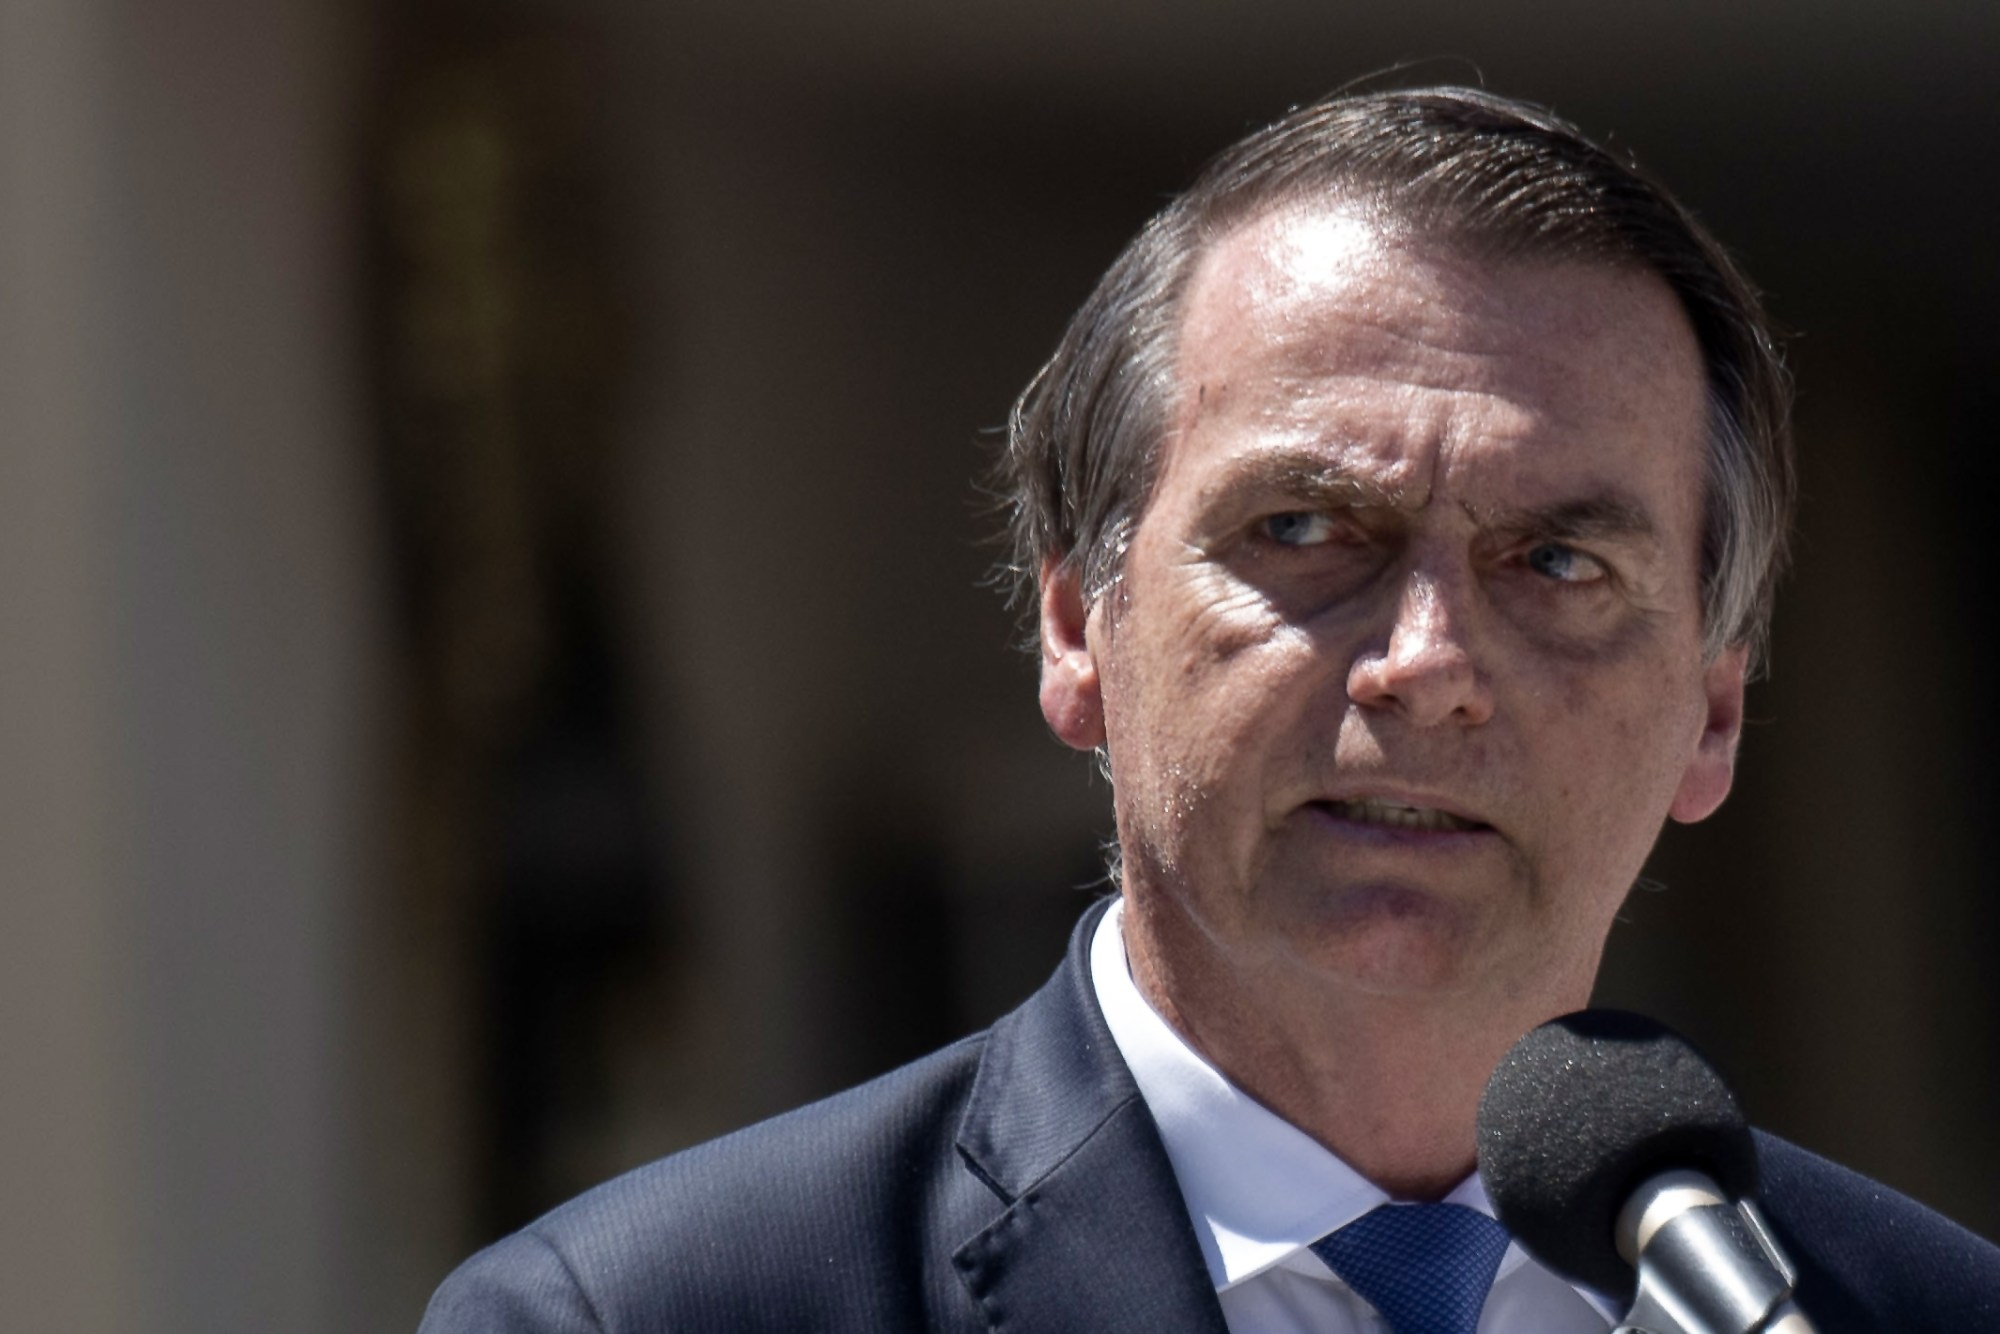 Brazil's President Jair Bolsonaro delivers a speech during an event to celebrate 211 years of the creation of the Brazilian Marine Corps in Rio de Janeiro, Brazil on March 07, 2019. (Credit: MAURO PIMENTEL/AFP/Getty Images)